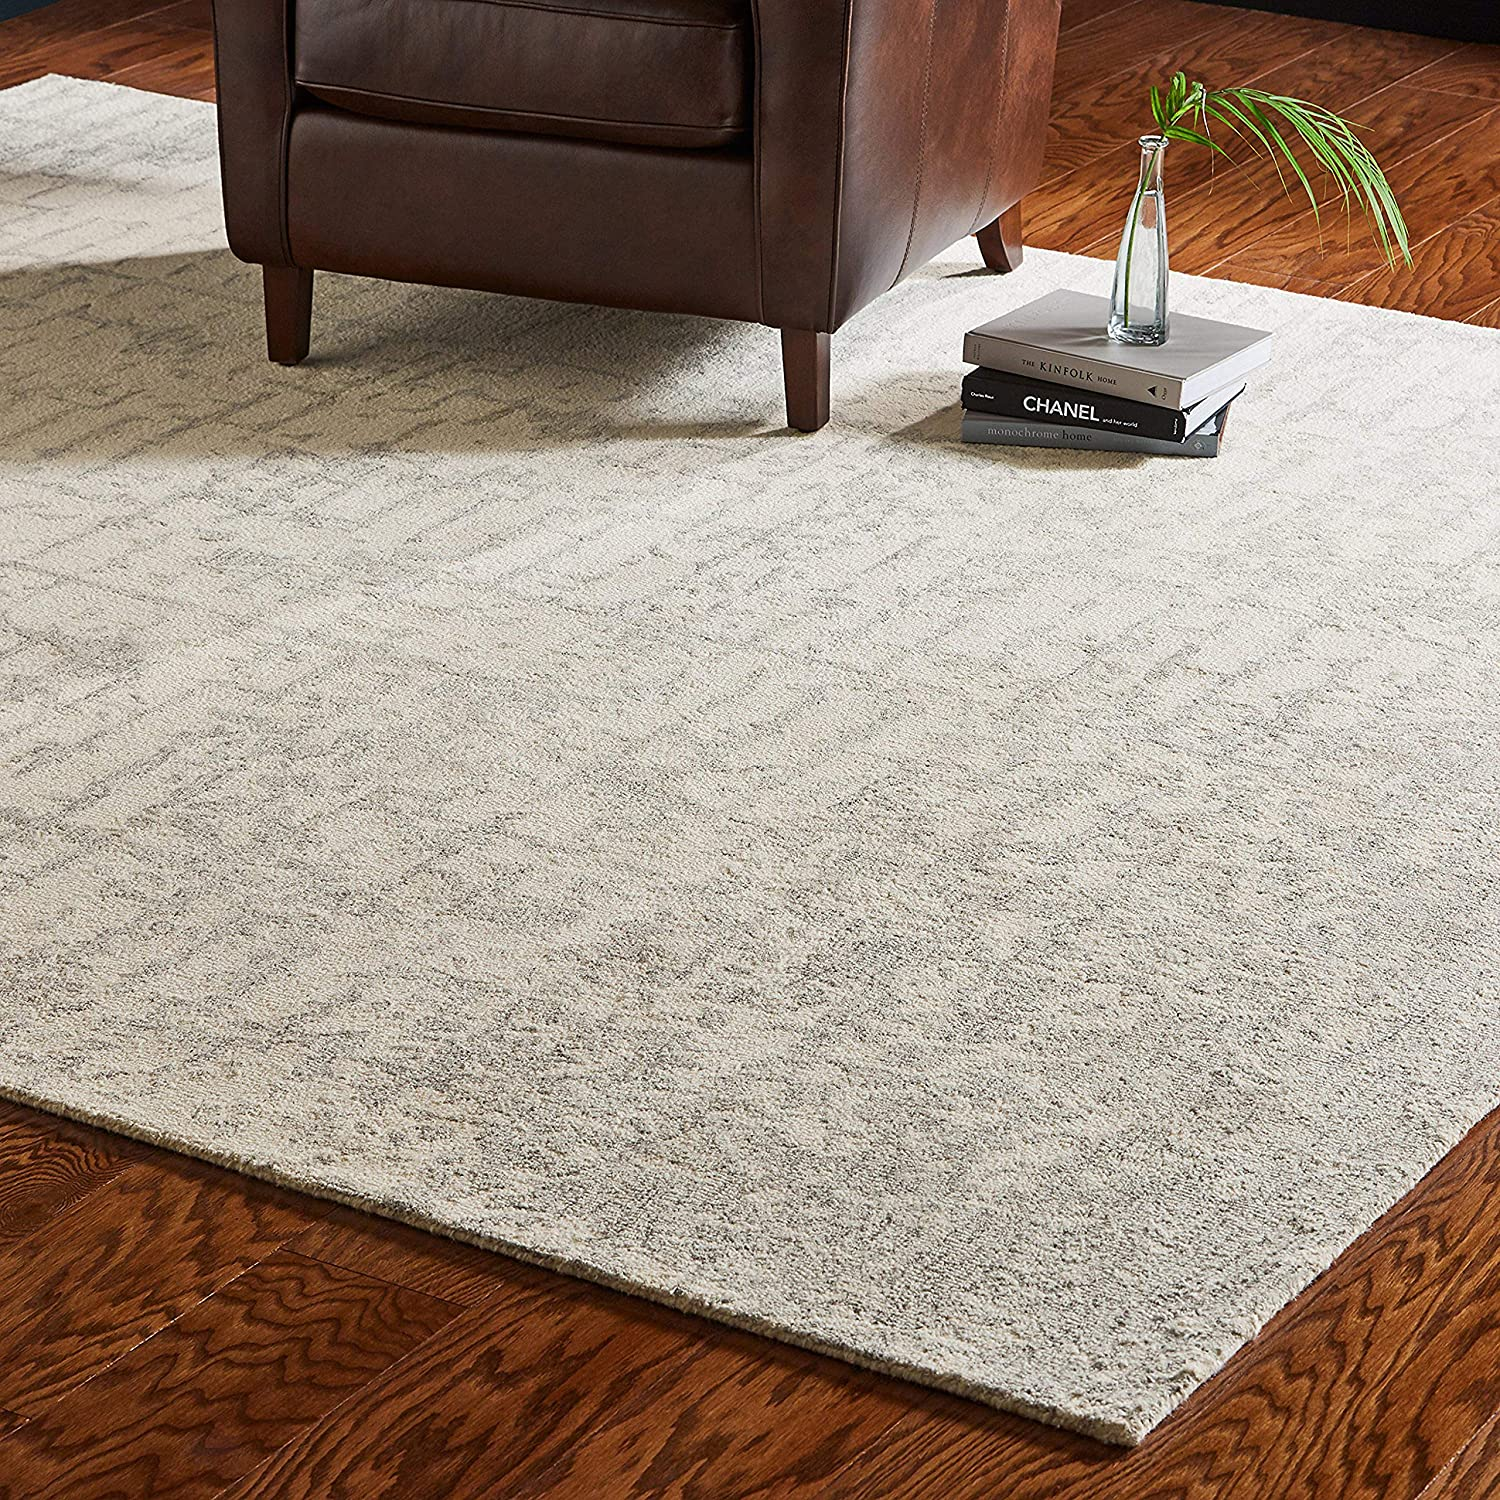 Rivet Contemporary Linear Distressed Wool Rug, 8